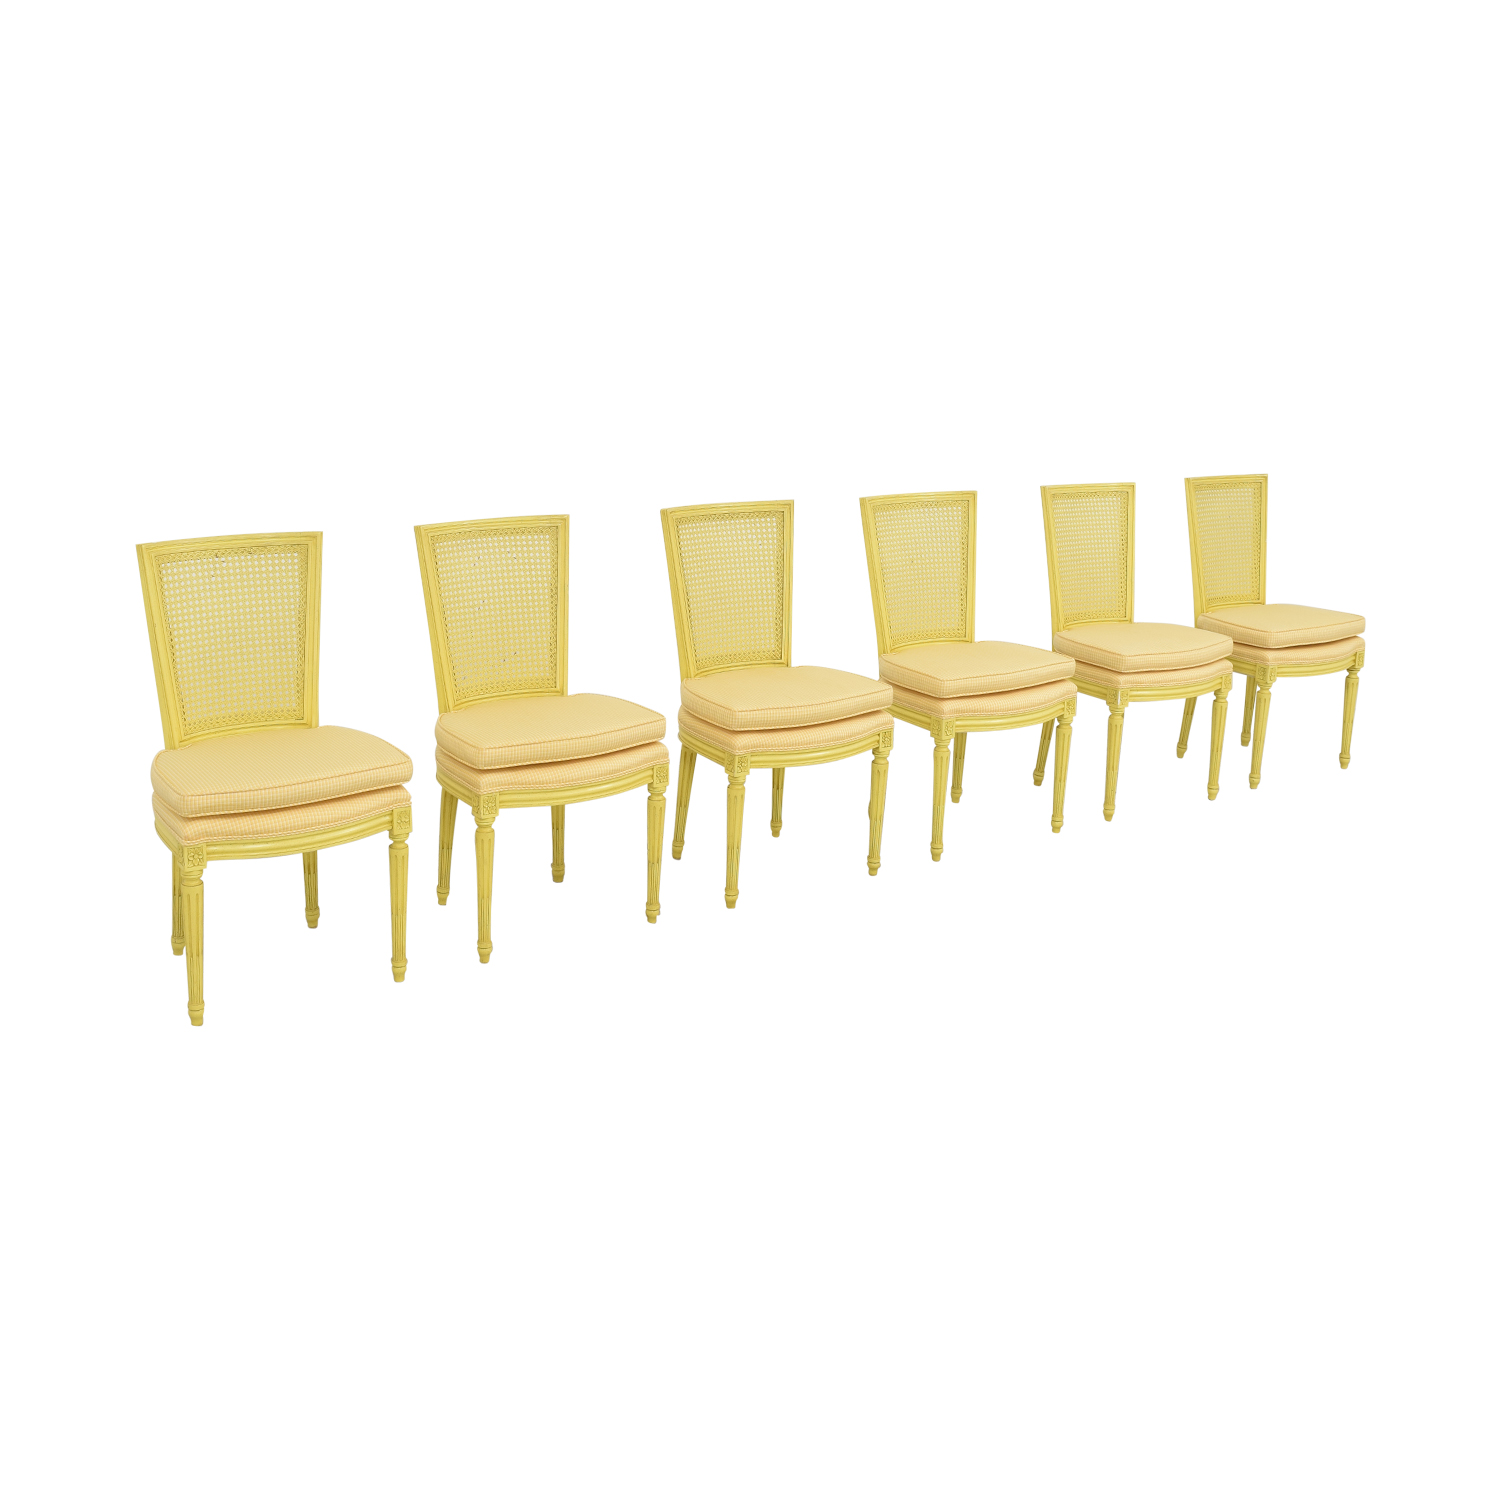 Upholstered Dining Side Chairs Chairs